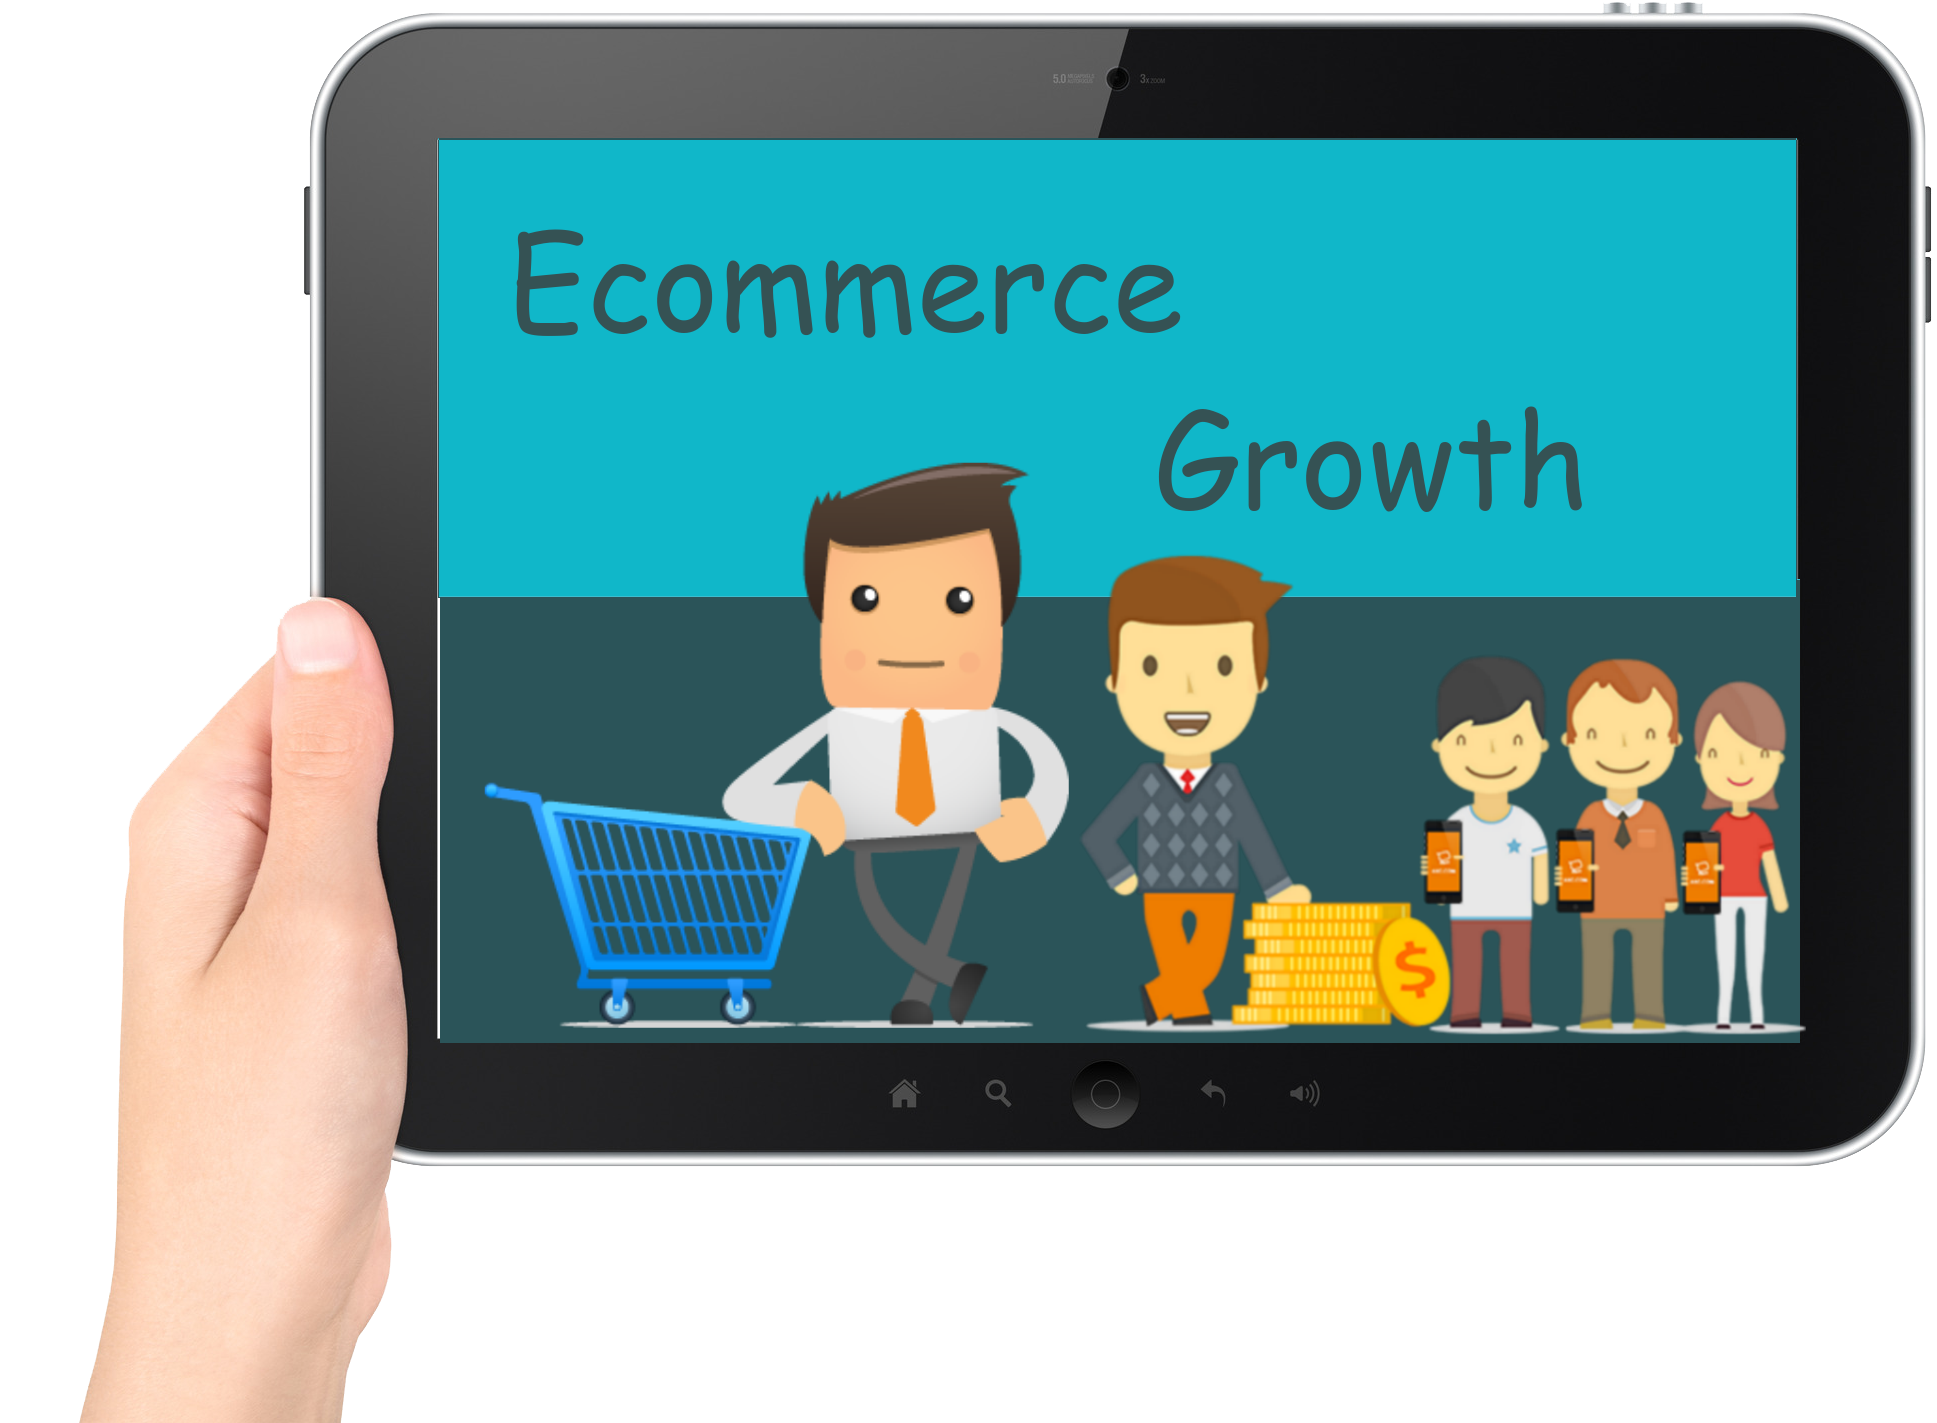 Ecommerce Growth in 2016